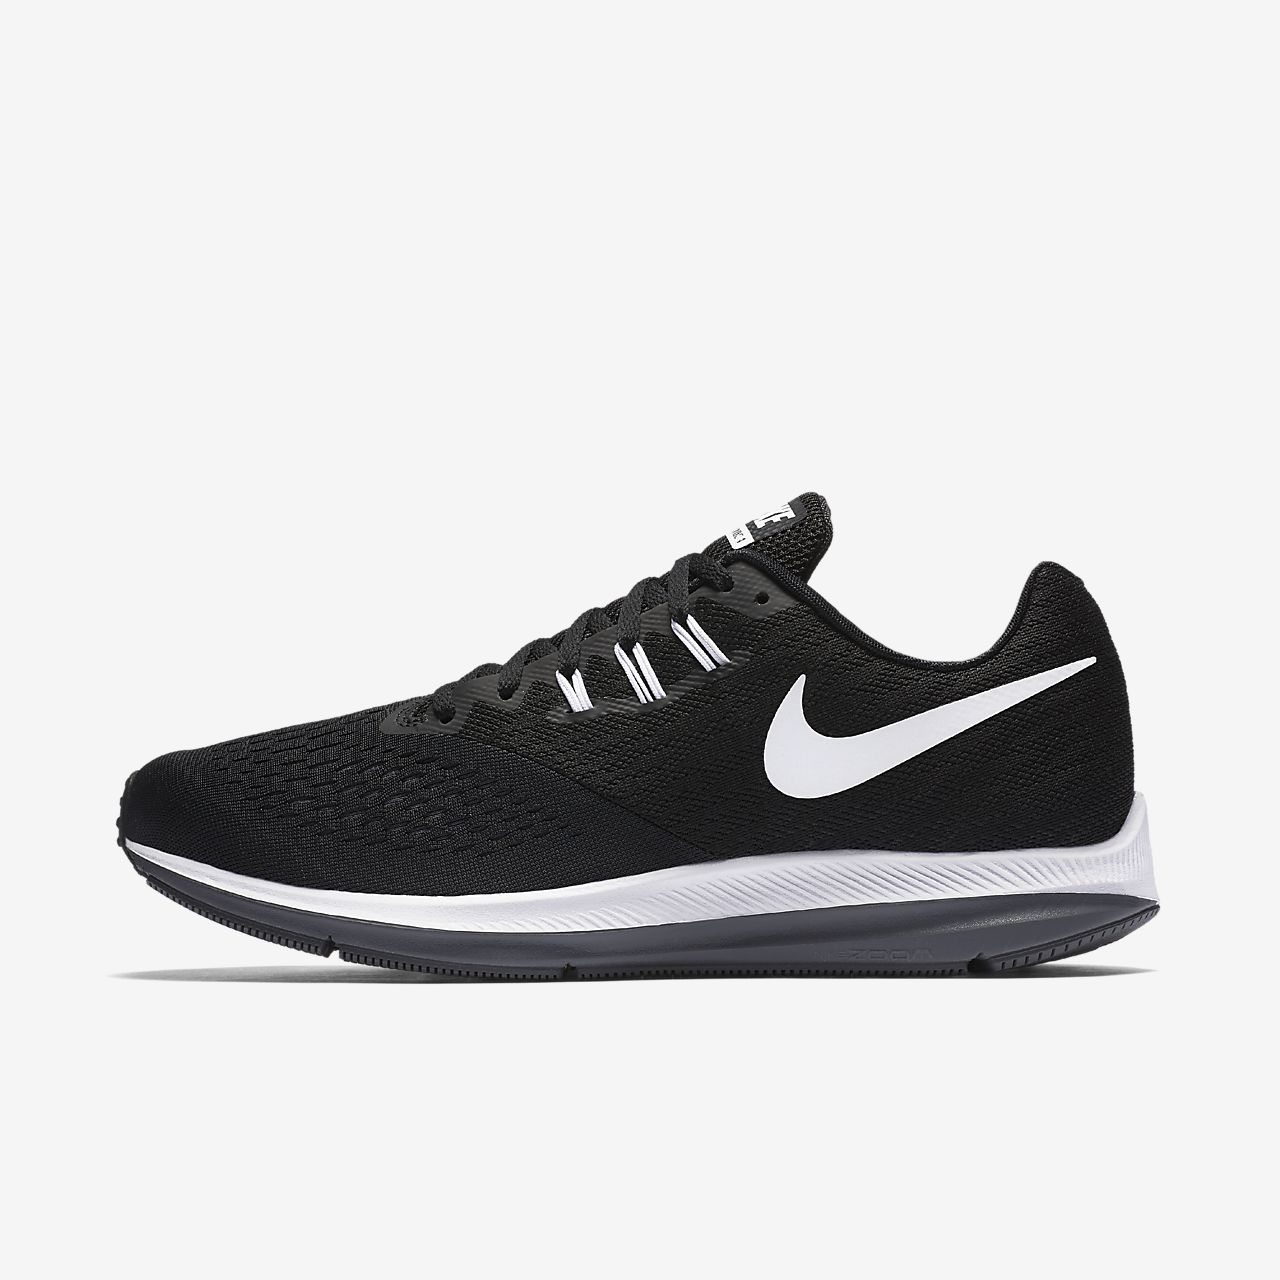 ... Nike Zoom Winflo 4 Men's Running Shoe